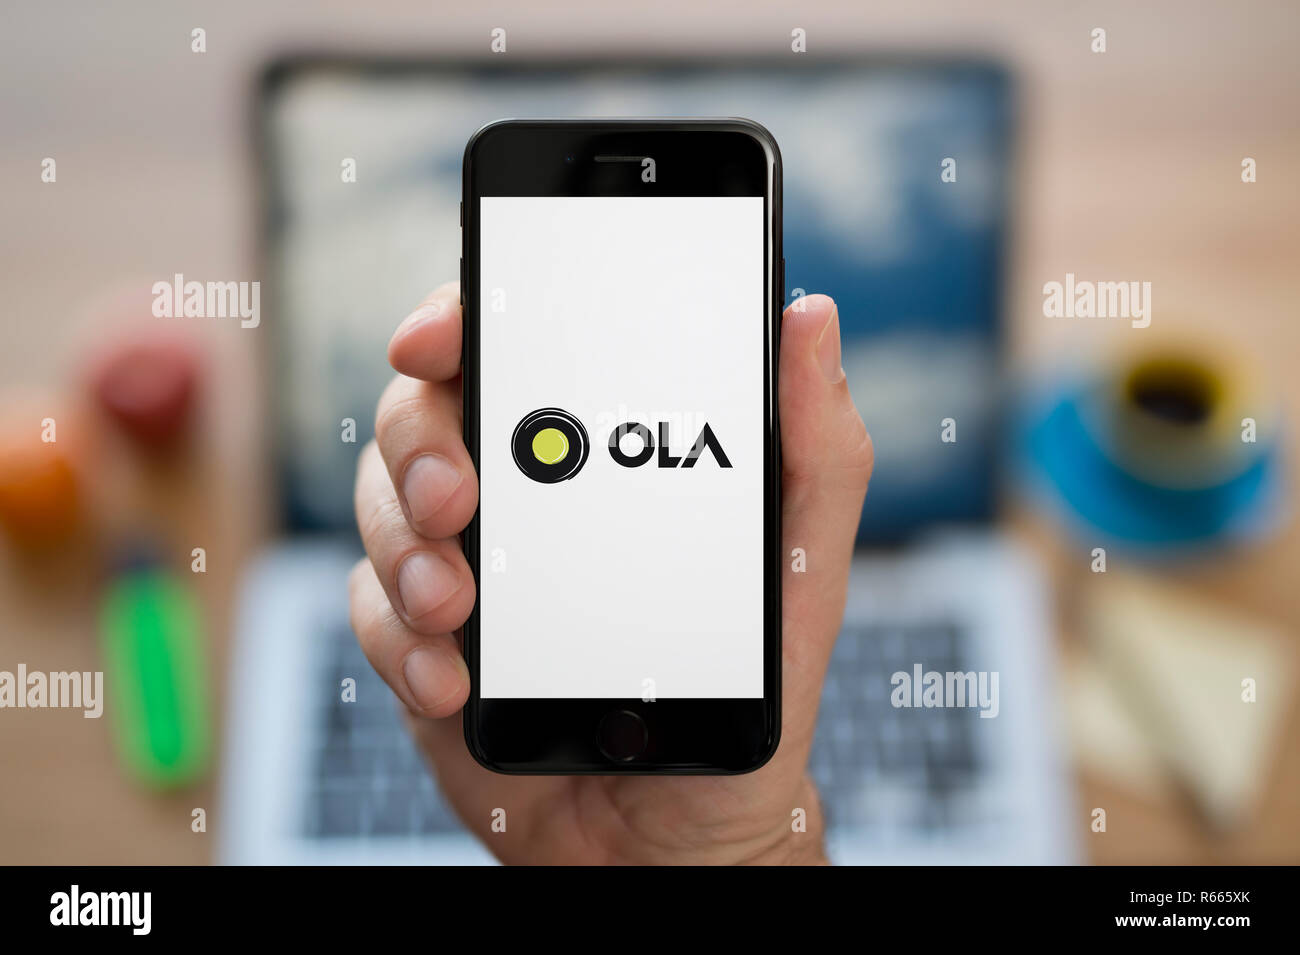 A man looks at his iPhone which displays the Ola Cabs logo, while sat at his computer desk (Editorial use only). - Stock Image